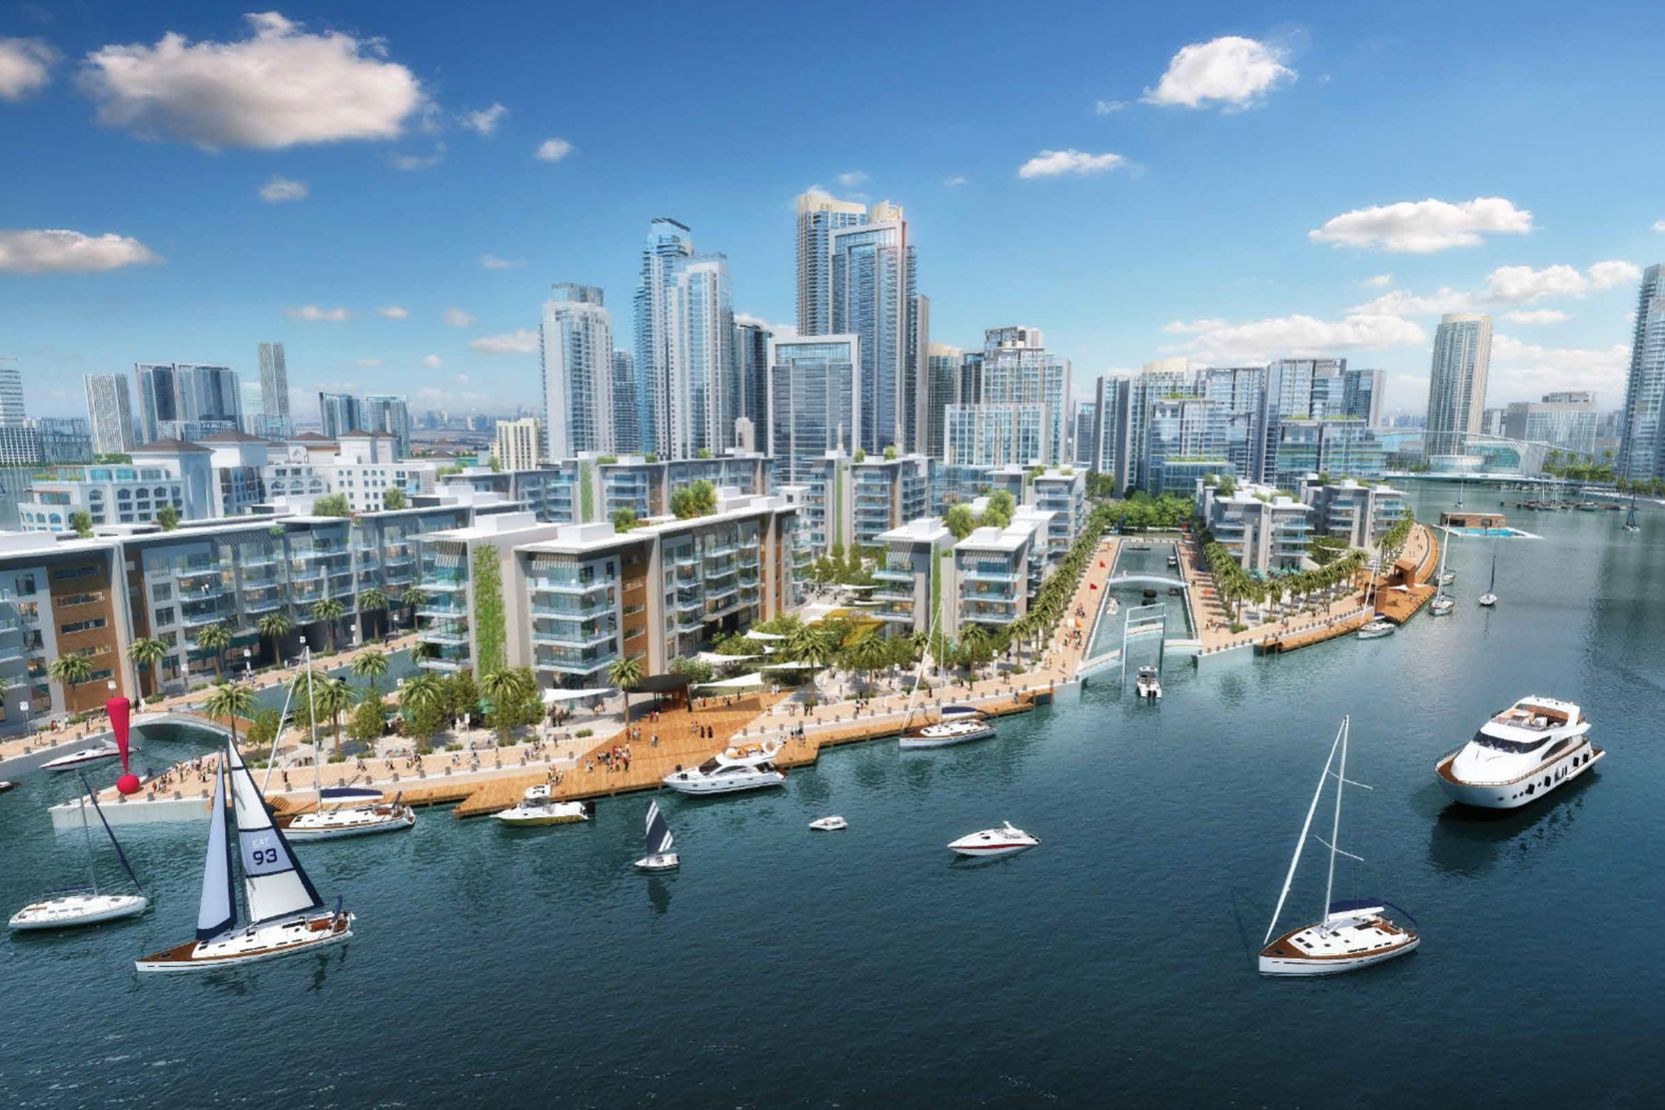 Jumeirah 1 2 3 Dubai Floor Plans moreover Marquise Square Gallery together with The Cove together with Jumeirah 1 2 3 Dubai Floor Plans also Jumeirah Living Marina Gate. on creek gate dubai harbour